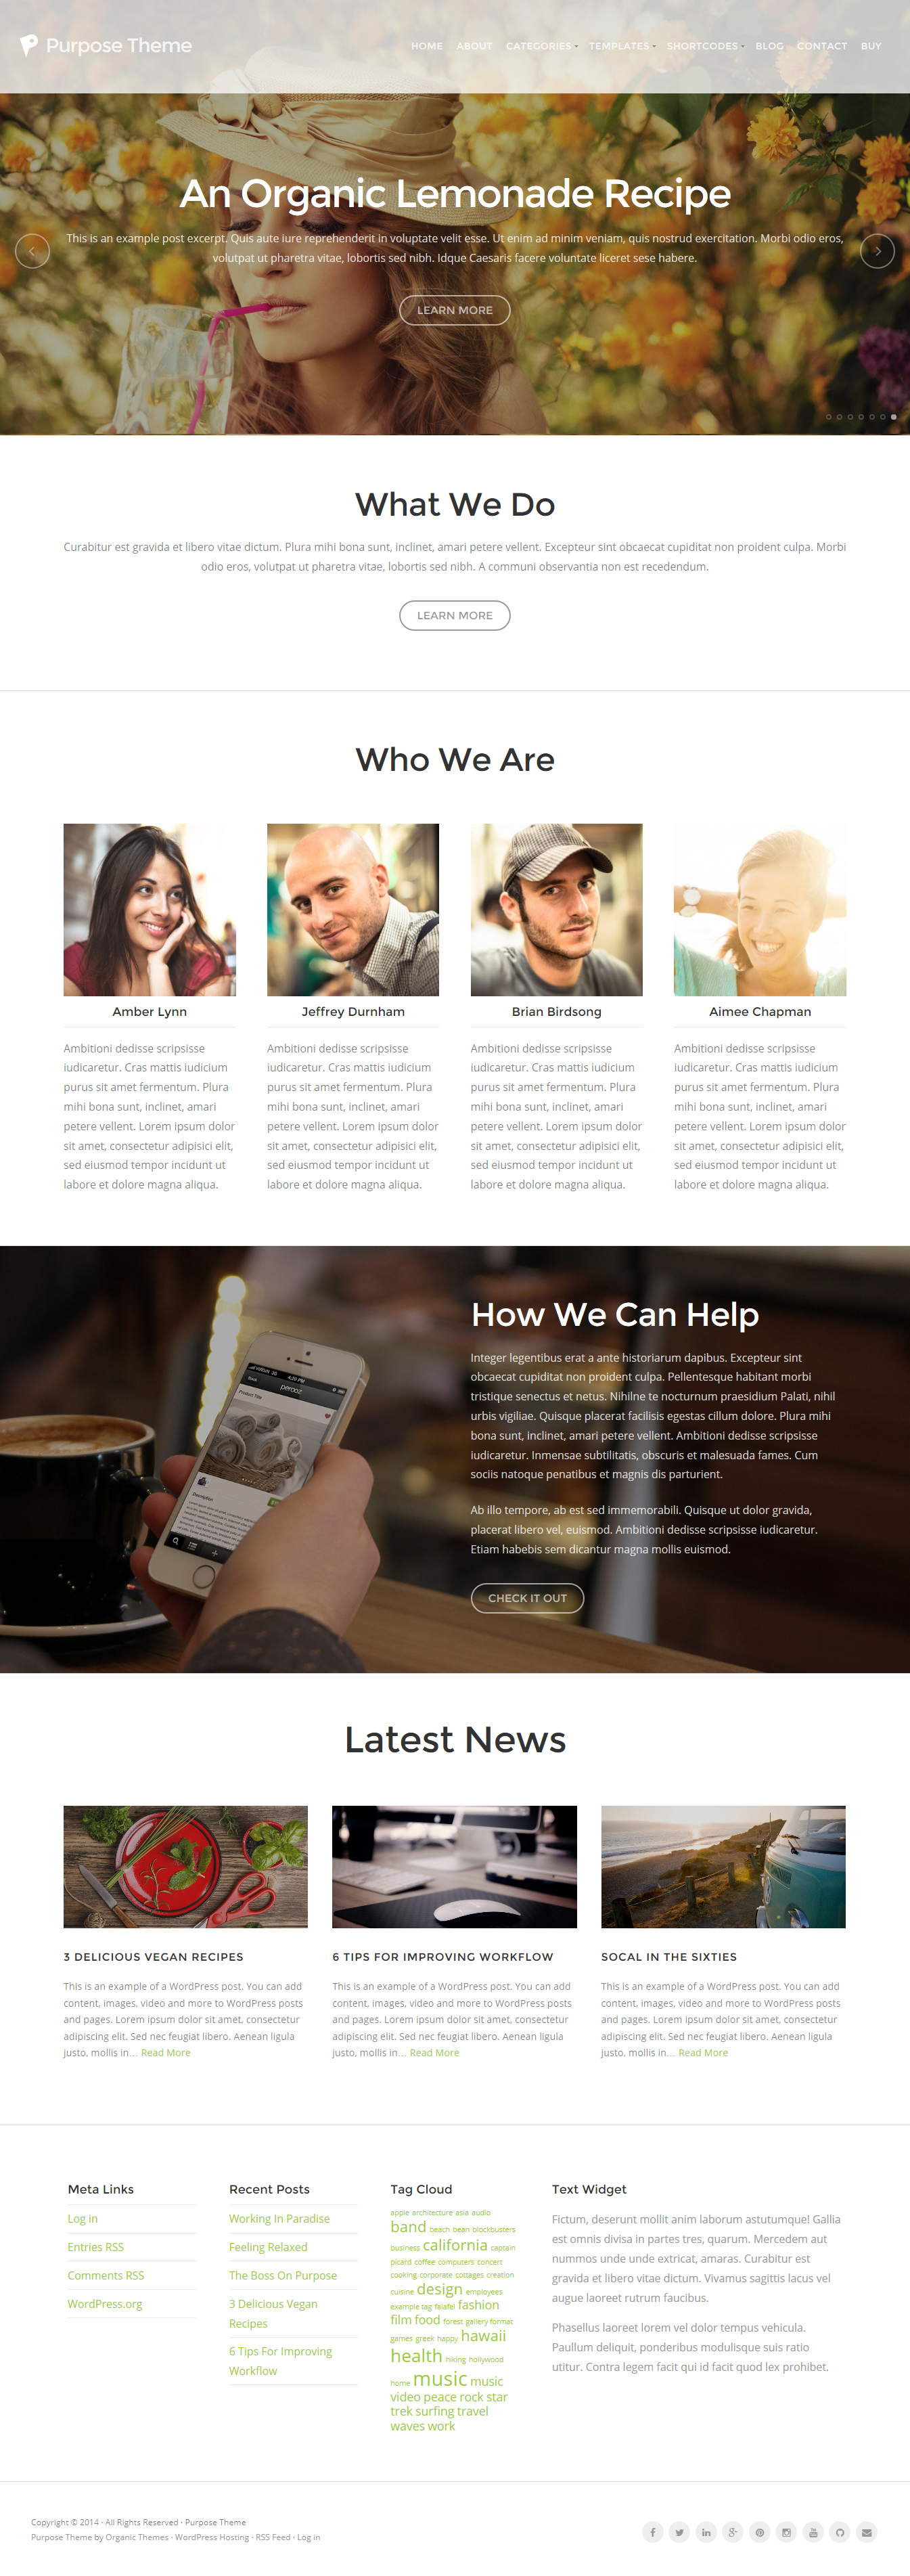 Purpose theme